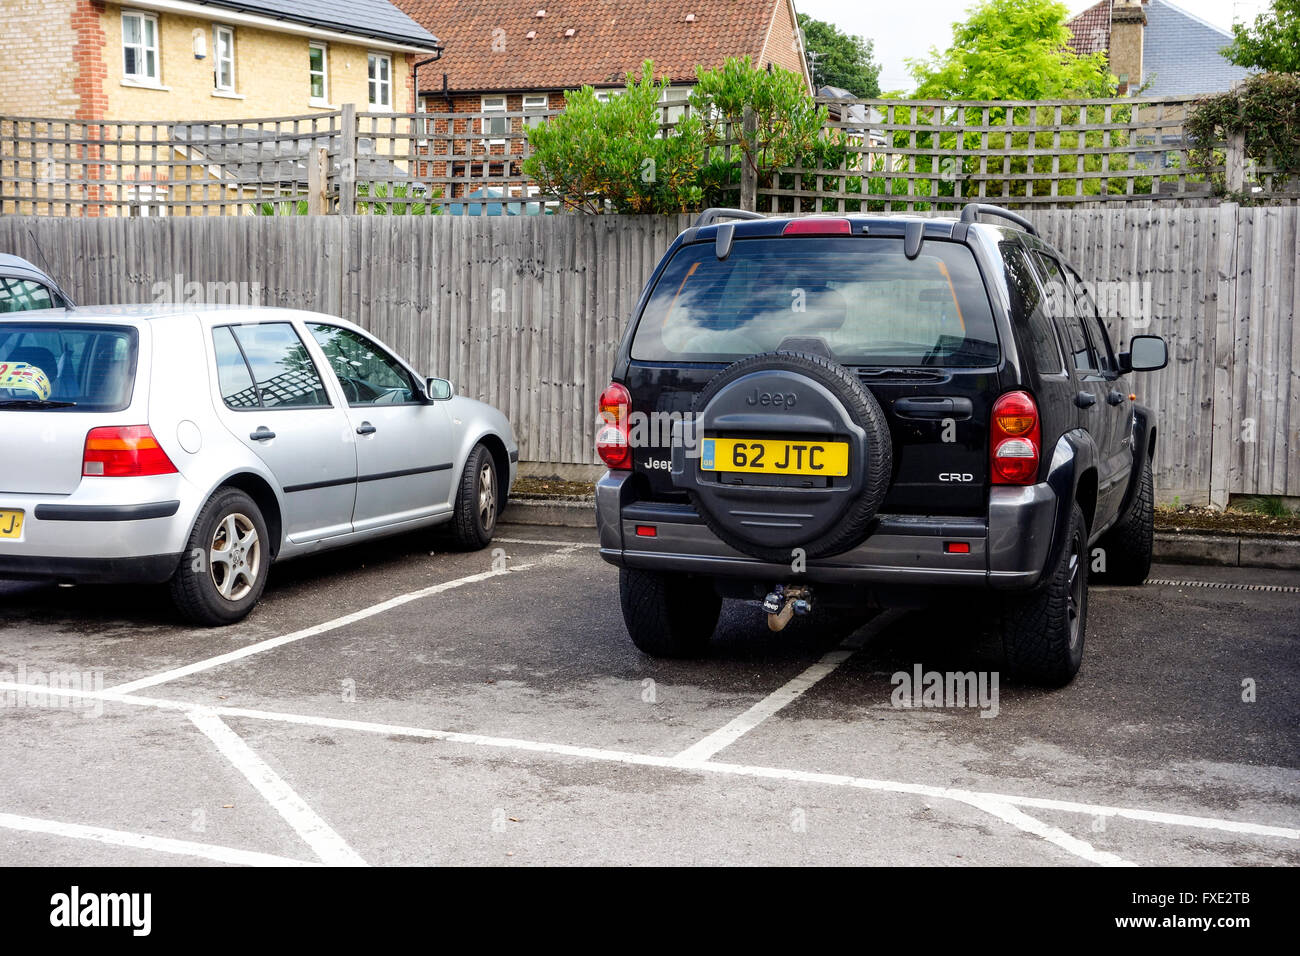 Inconsiderate parking in a car park, UK. THE SAME PICTURE WITHOUT NUMBER PLATE IS AVAILABLE. (See Image Ref: FXE2R7) - Stock Image